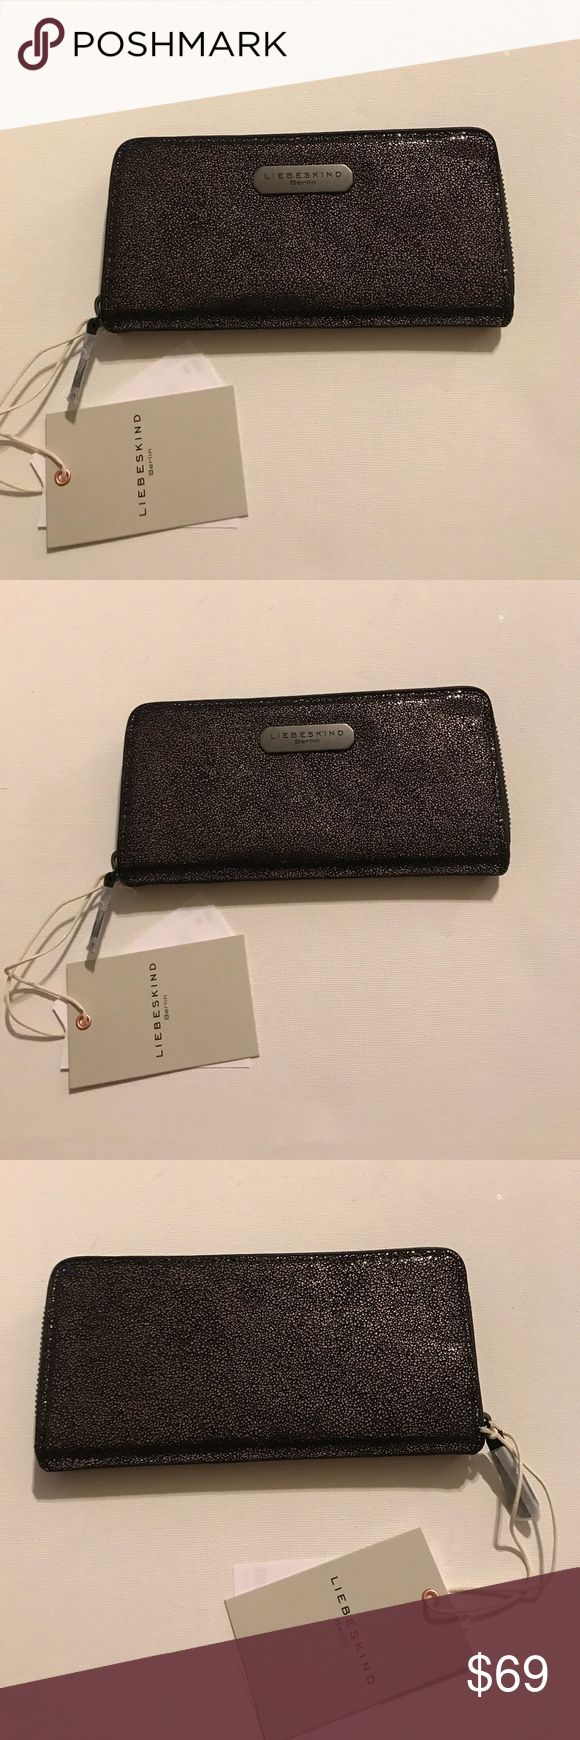 NWT! New Liebeskind Berlin black glitter wallet❤️ New with tags and original packaging. Liebeskind Berlin real leather wallet. Black glitter pattern, zip around style. See pics. Liebeskind Bags Wallets